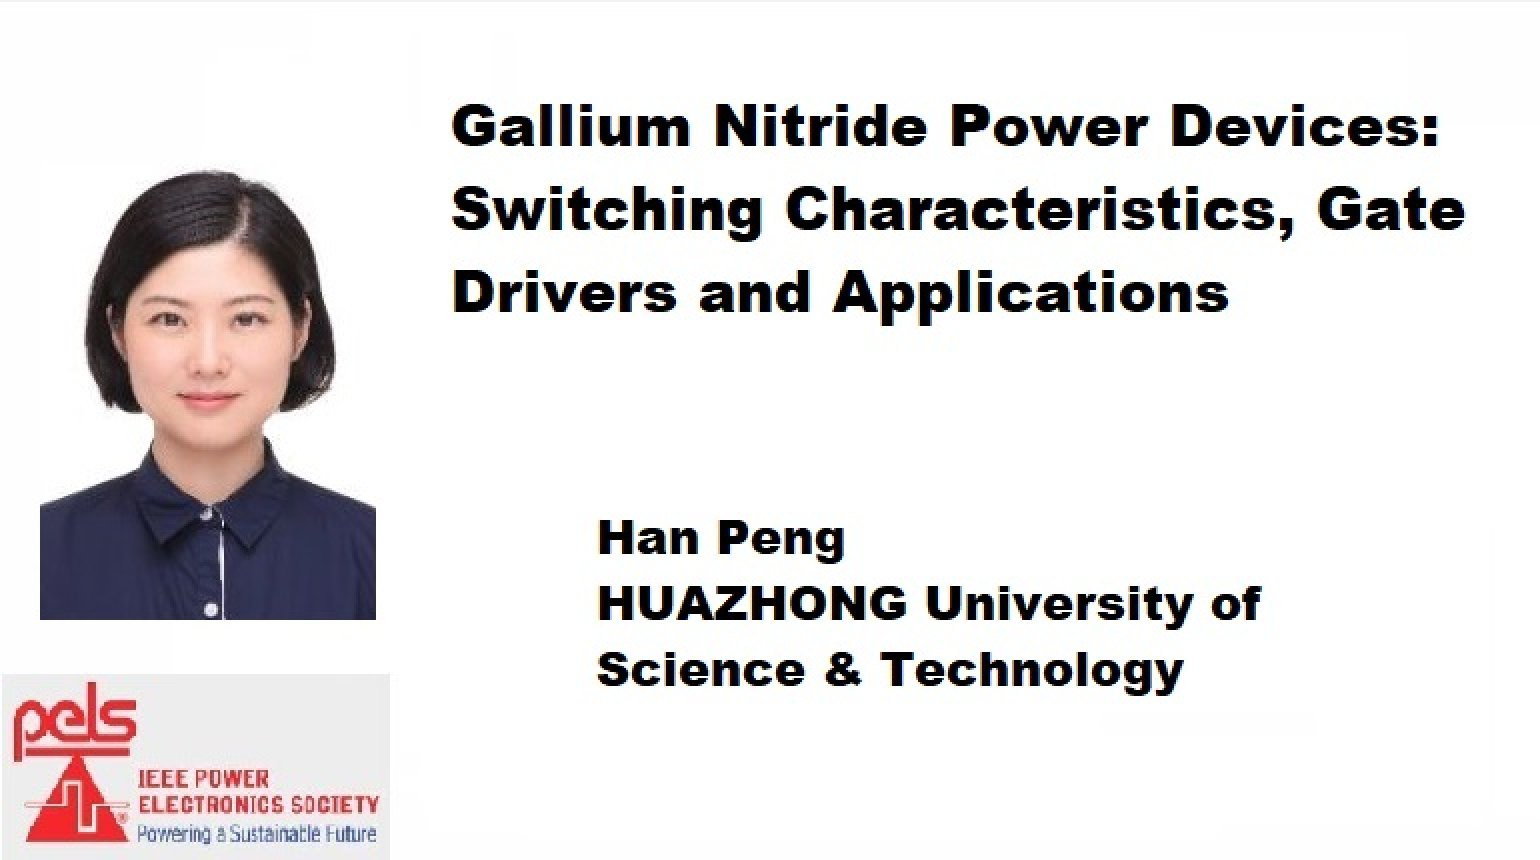 Gallium Nitride Power Devices: Switching Characteristics, Gate Drivers and Applications Video